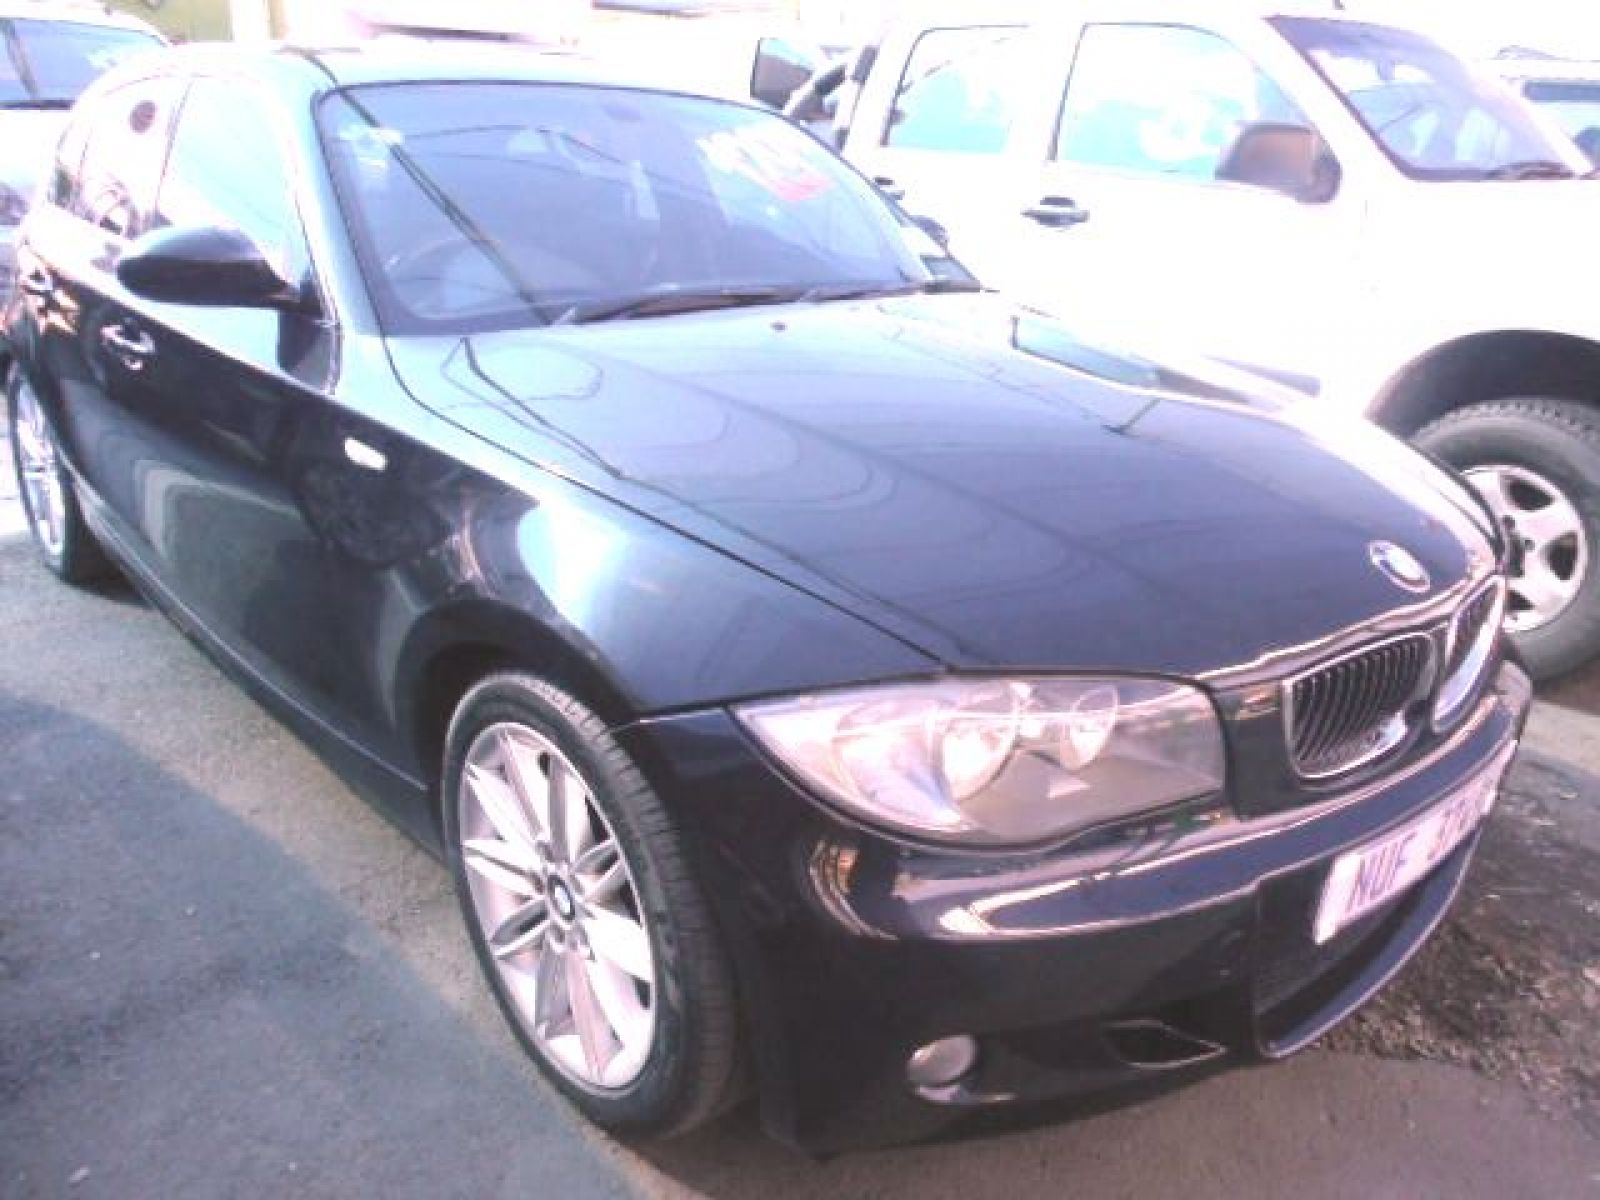 BMW 130i SPORT (E87) for sale in Roodepoort Gauteng